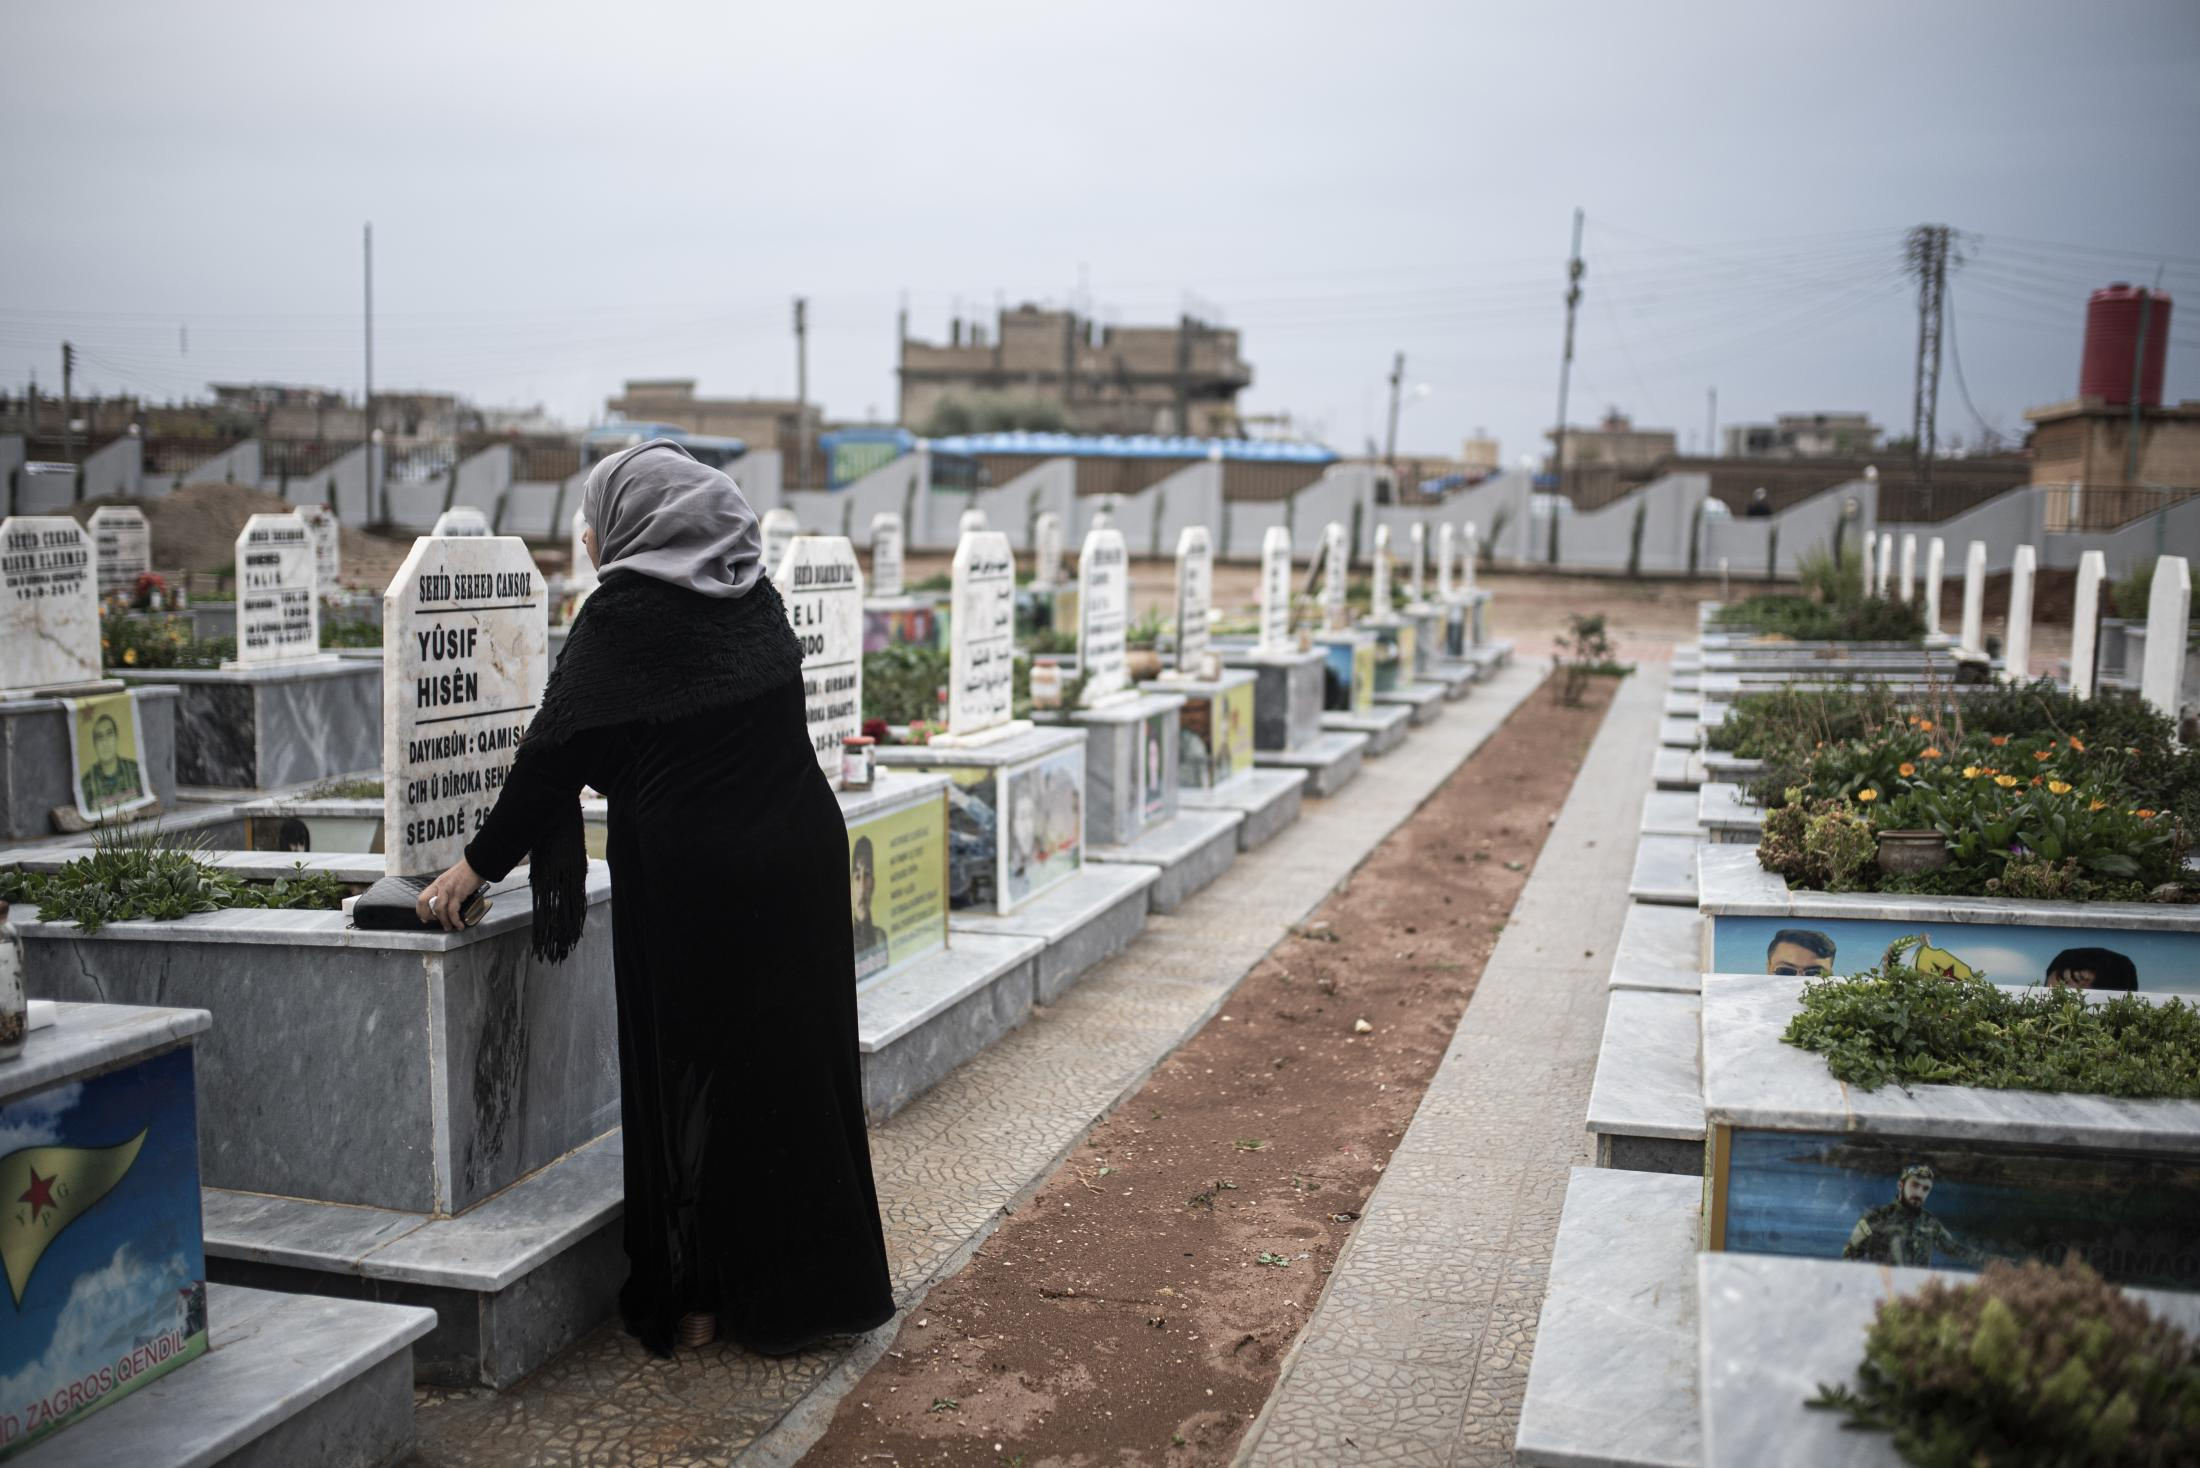 A woman cry in front of the tomb of his son, killed by a yihadist snipper in Serekanye in the first days of the war. After the withdrawal of US troops from northern Syria in October 2019, Turkey launched an offensive against the predominantly Kurdish areas in the northeast of the country along Islamist forces. Calls for war crimes investigations into the conduct of Ankara-backed militias are mounting ever since. (Andoni Lubaki / Euskal Fondoa)